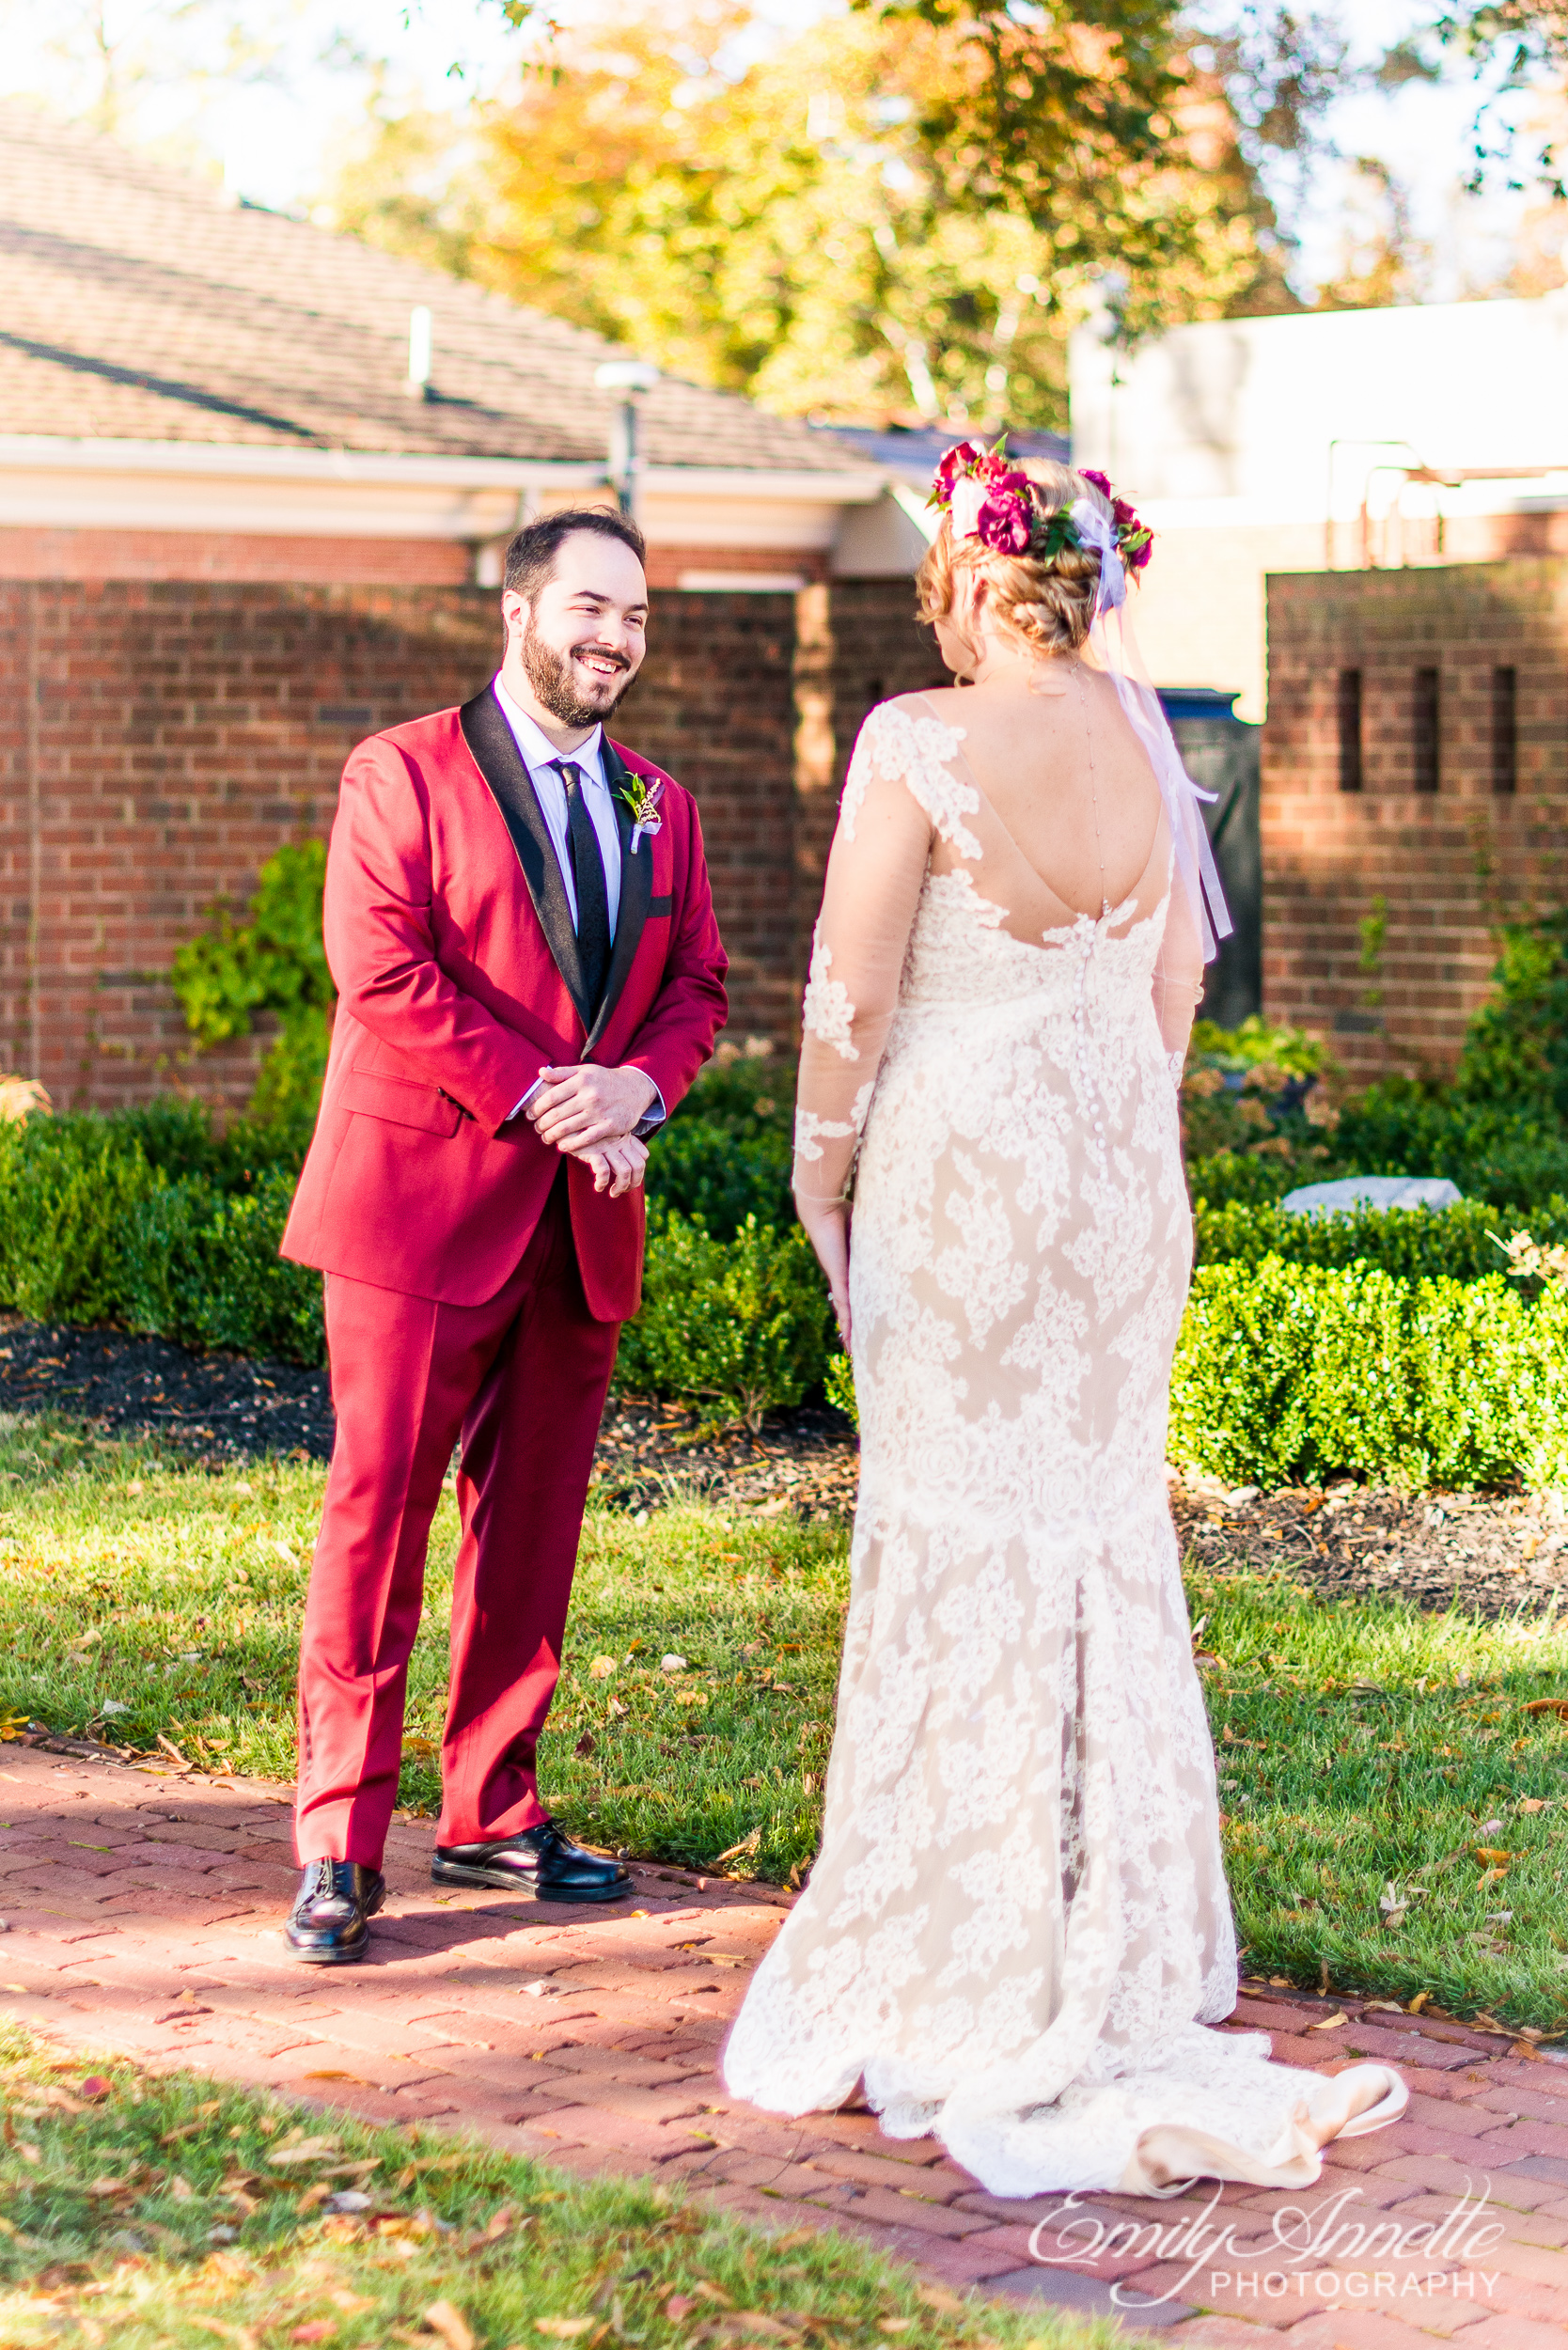 A groom in a red suit excited as he sees his bride for the first time for their first look before their wedding ceremony at Willow Oaks Country Club in Richmond, Virginia